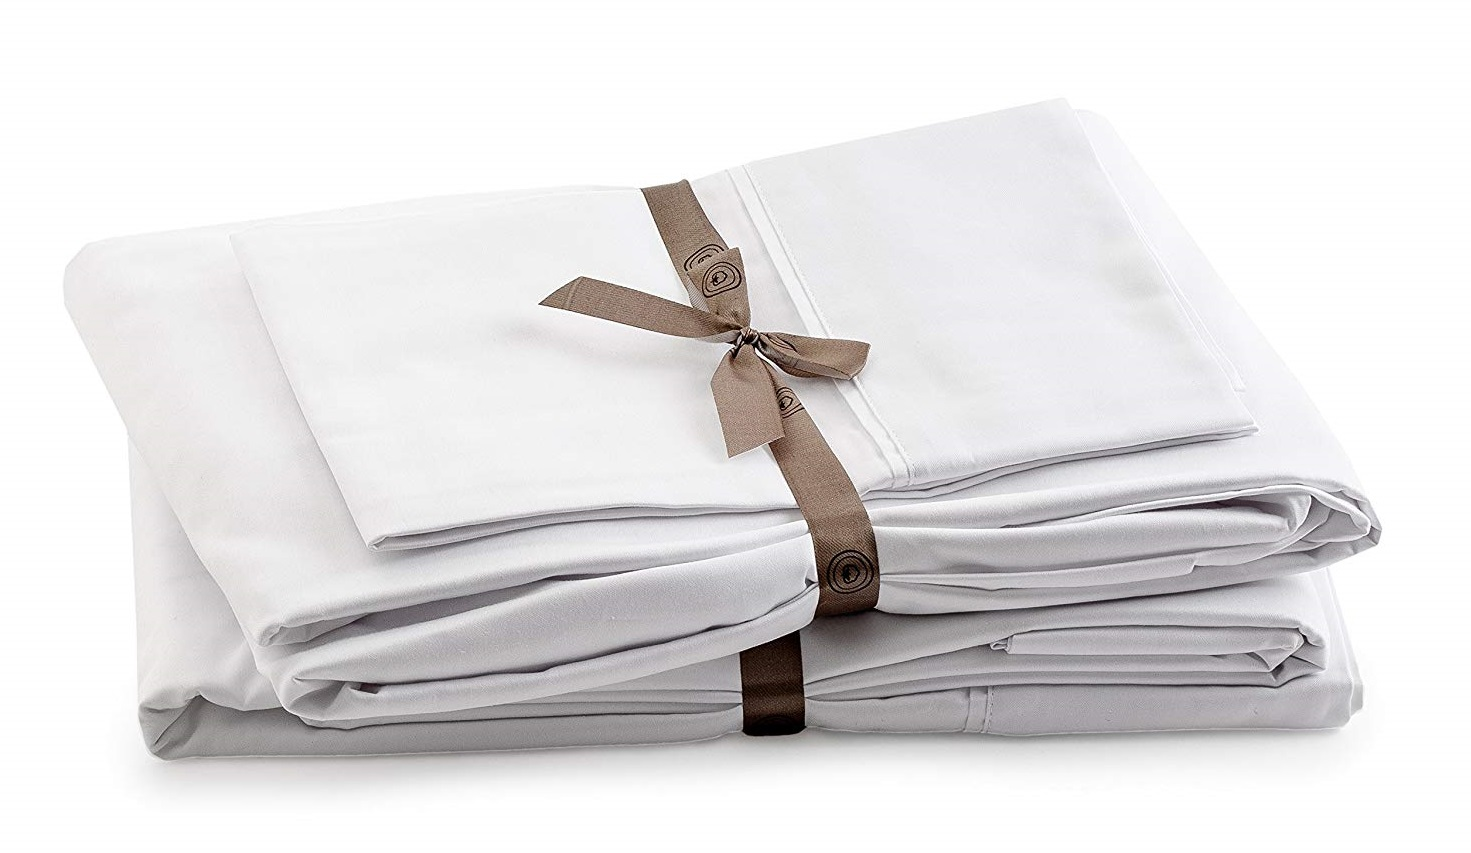 Microfiber vs. Cotton Sheets Reviews and Buying guide by www.snoremagazine.com